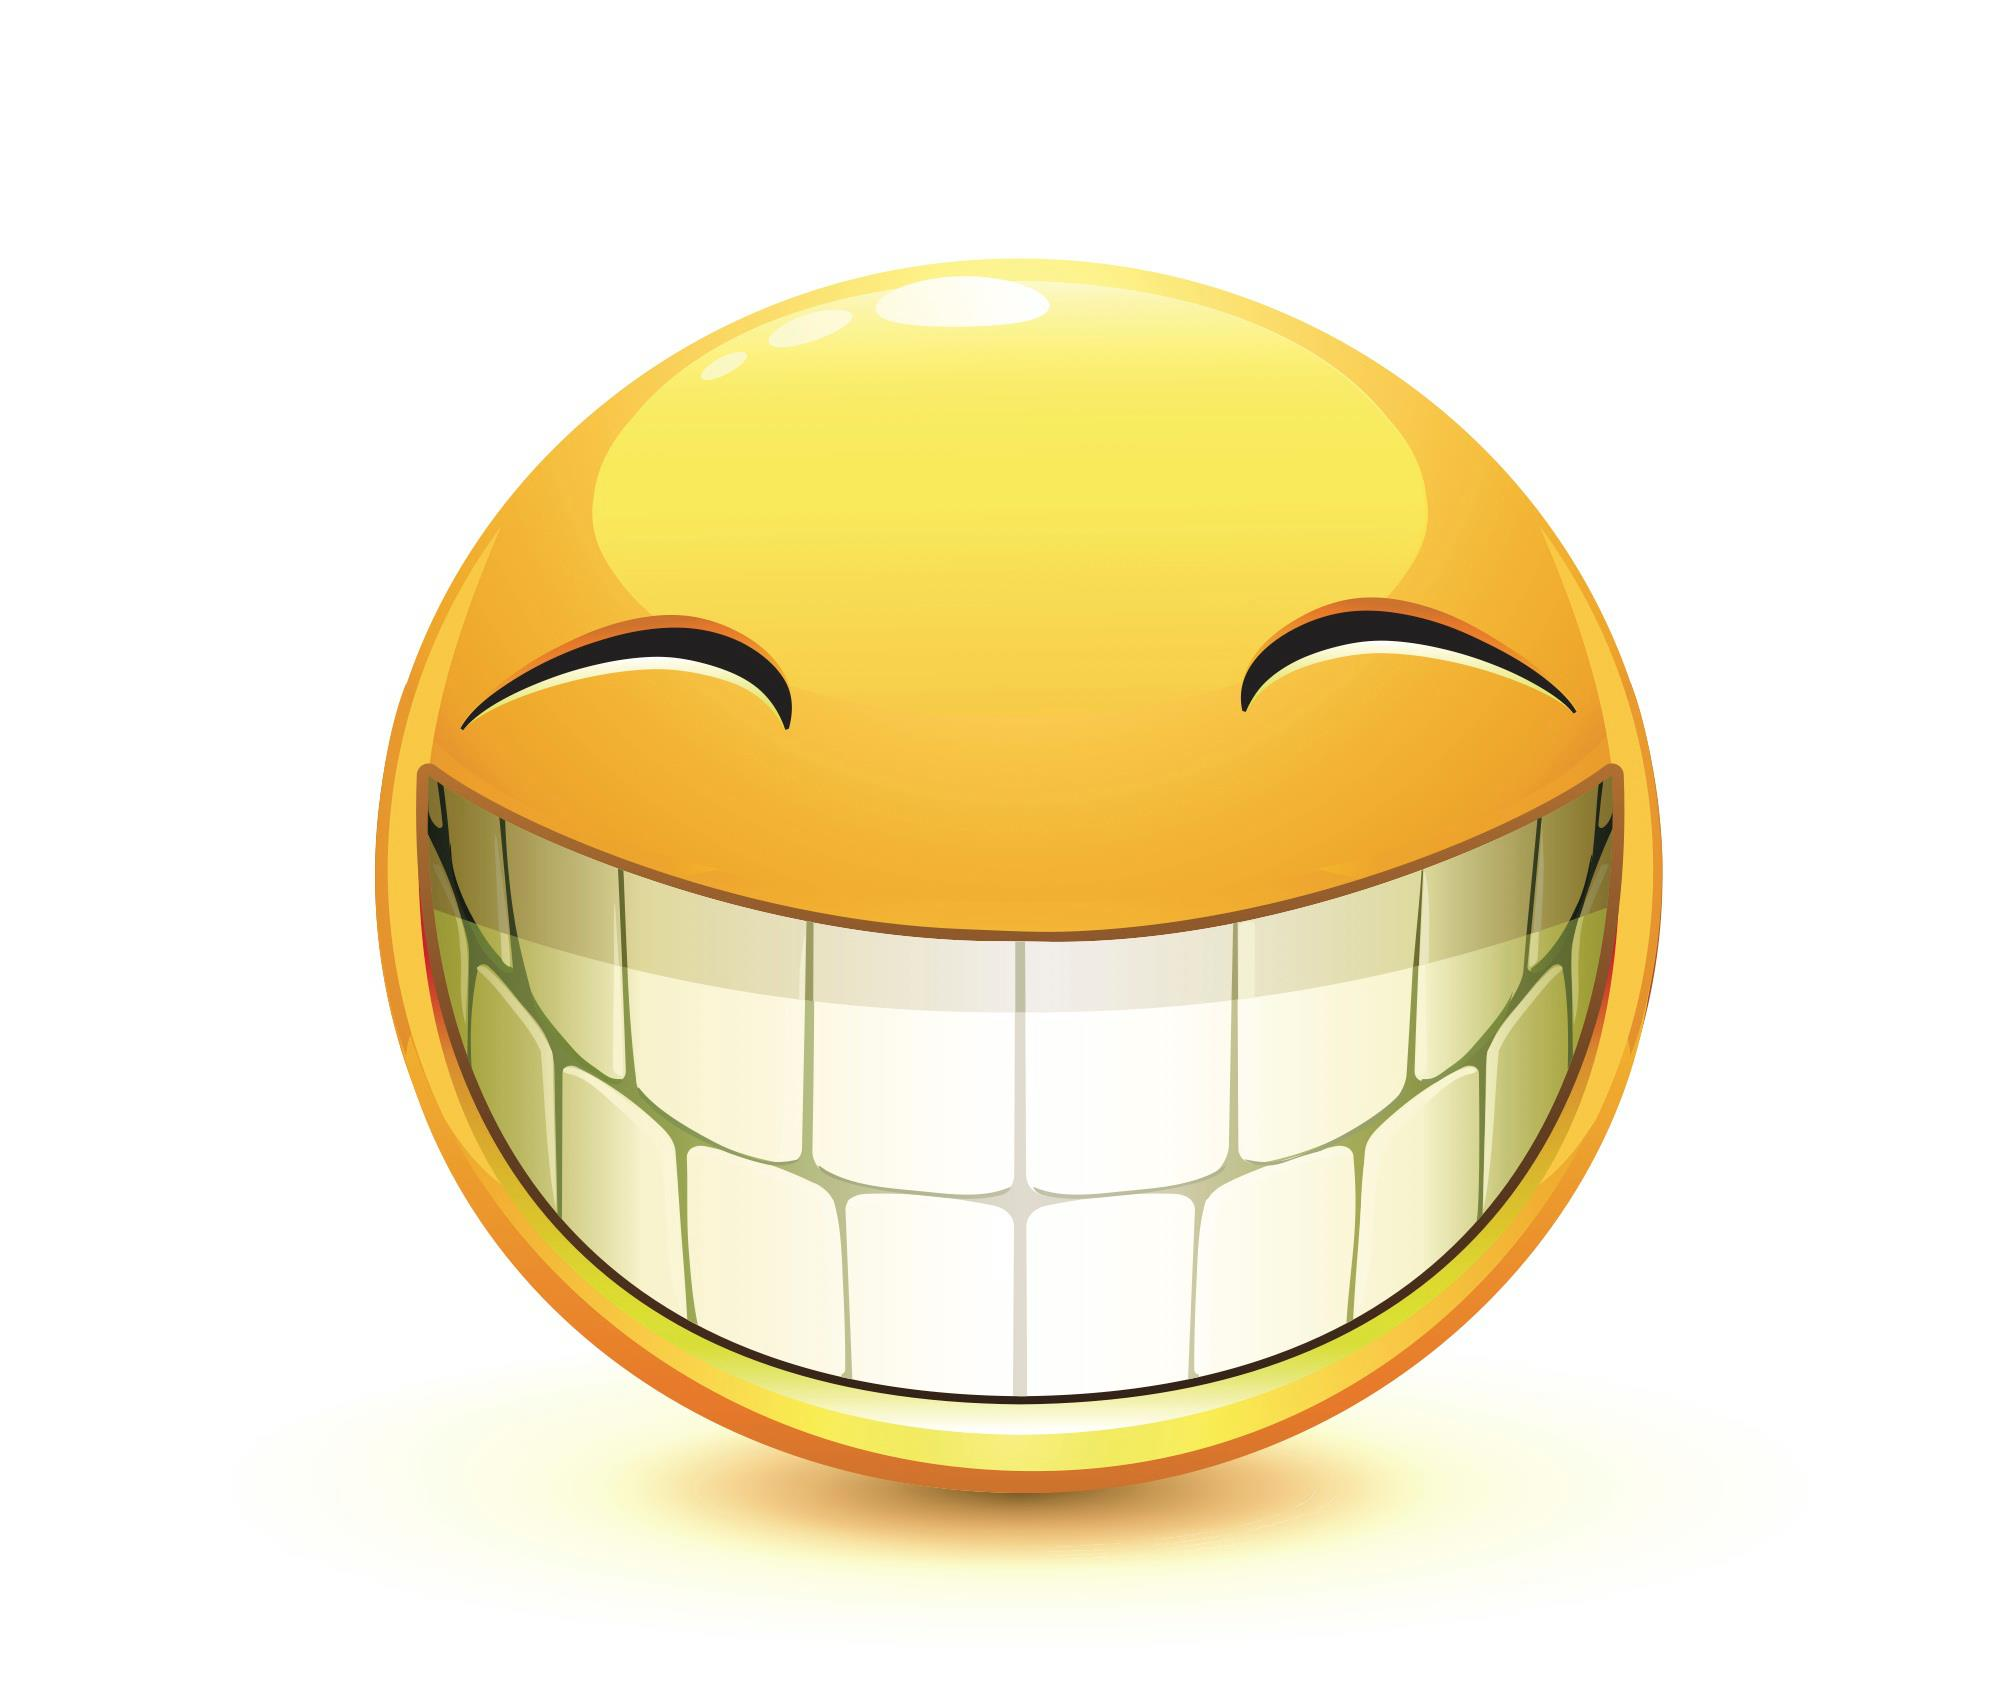 Emotions clipart big smile Search big Google  smile